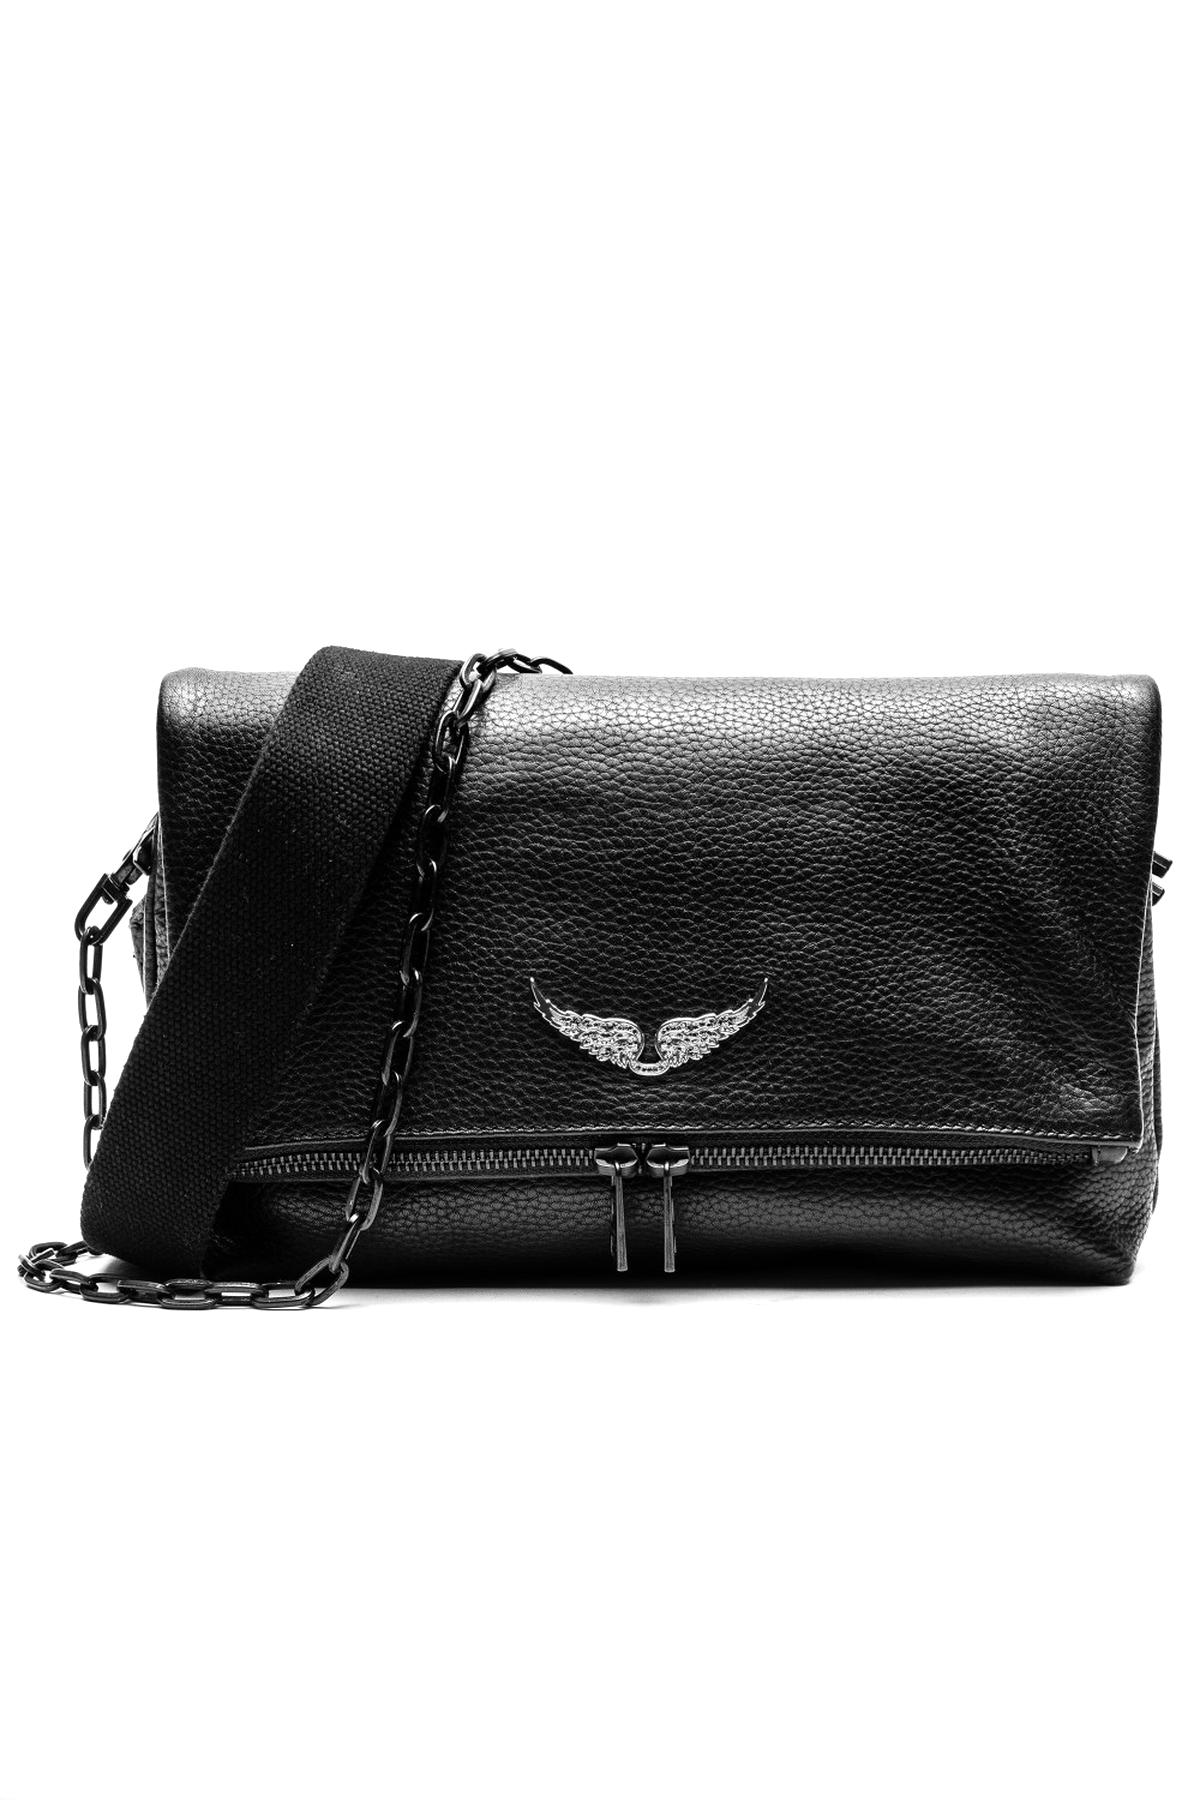 zadig voltaire sac rock d'occasion